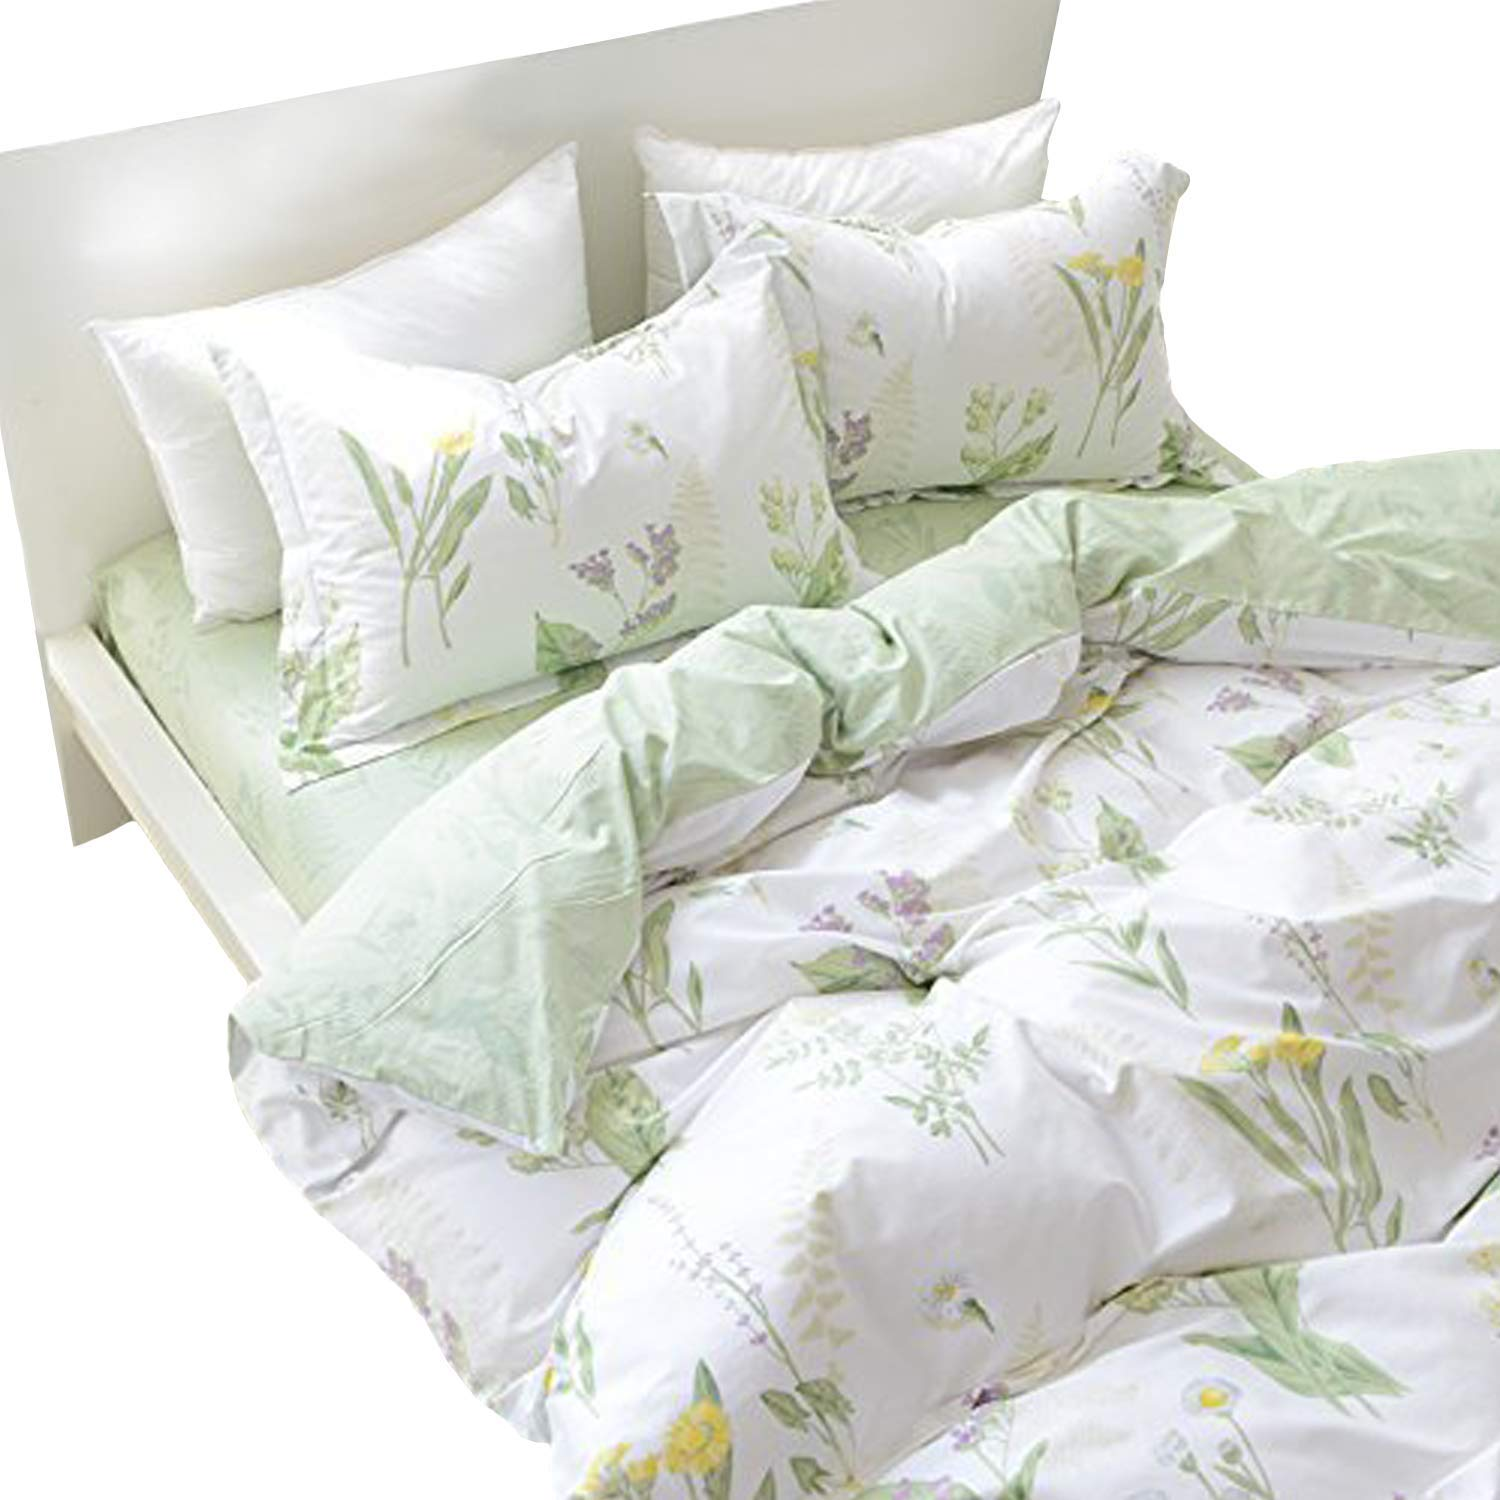 FADFAY Shabby Green Floral Duvet Cover Set Yellow Daisy Purple Lavender Flowers Cotton Bedding Set 3-Piece-1duvet Cover & 2pillowcases-Full Size